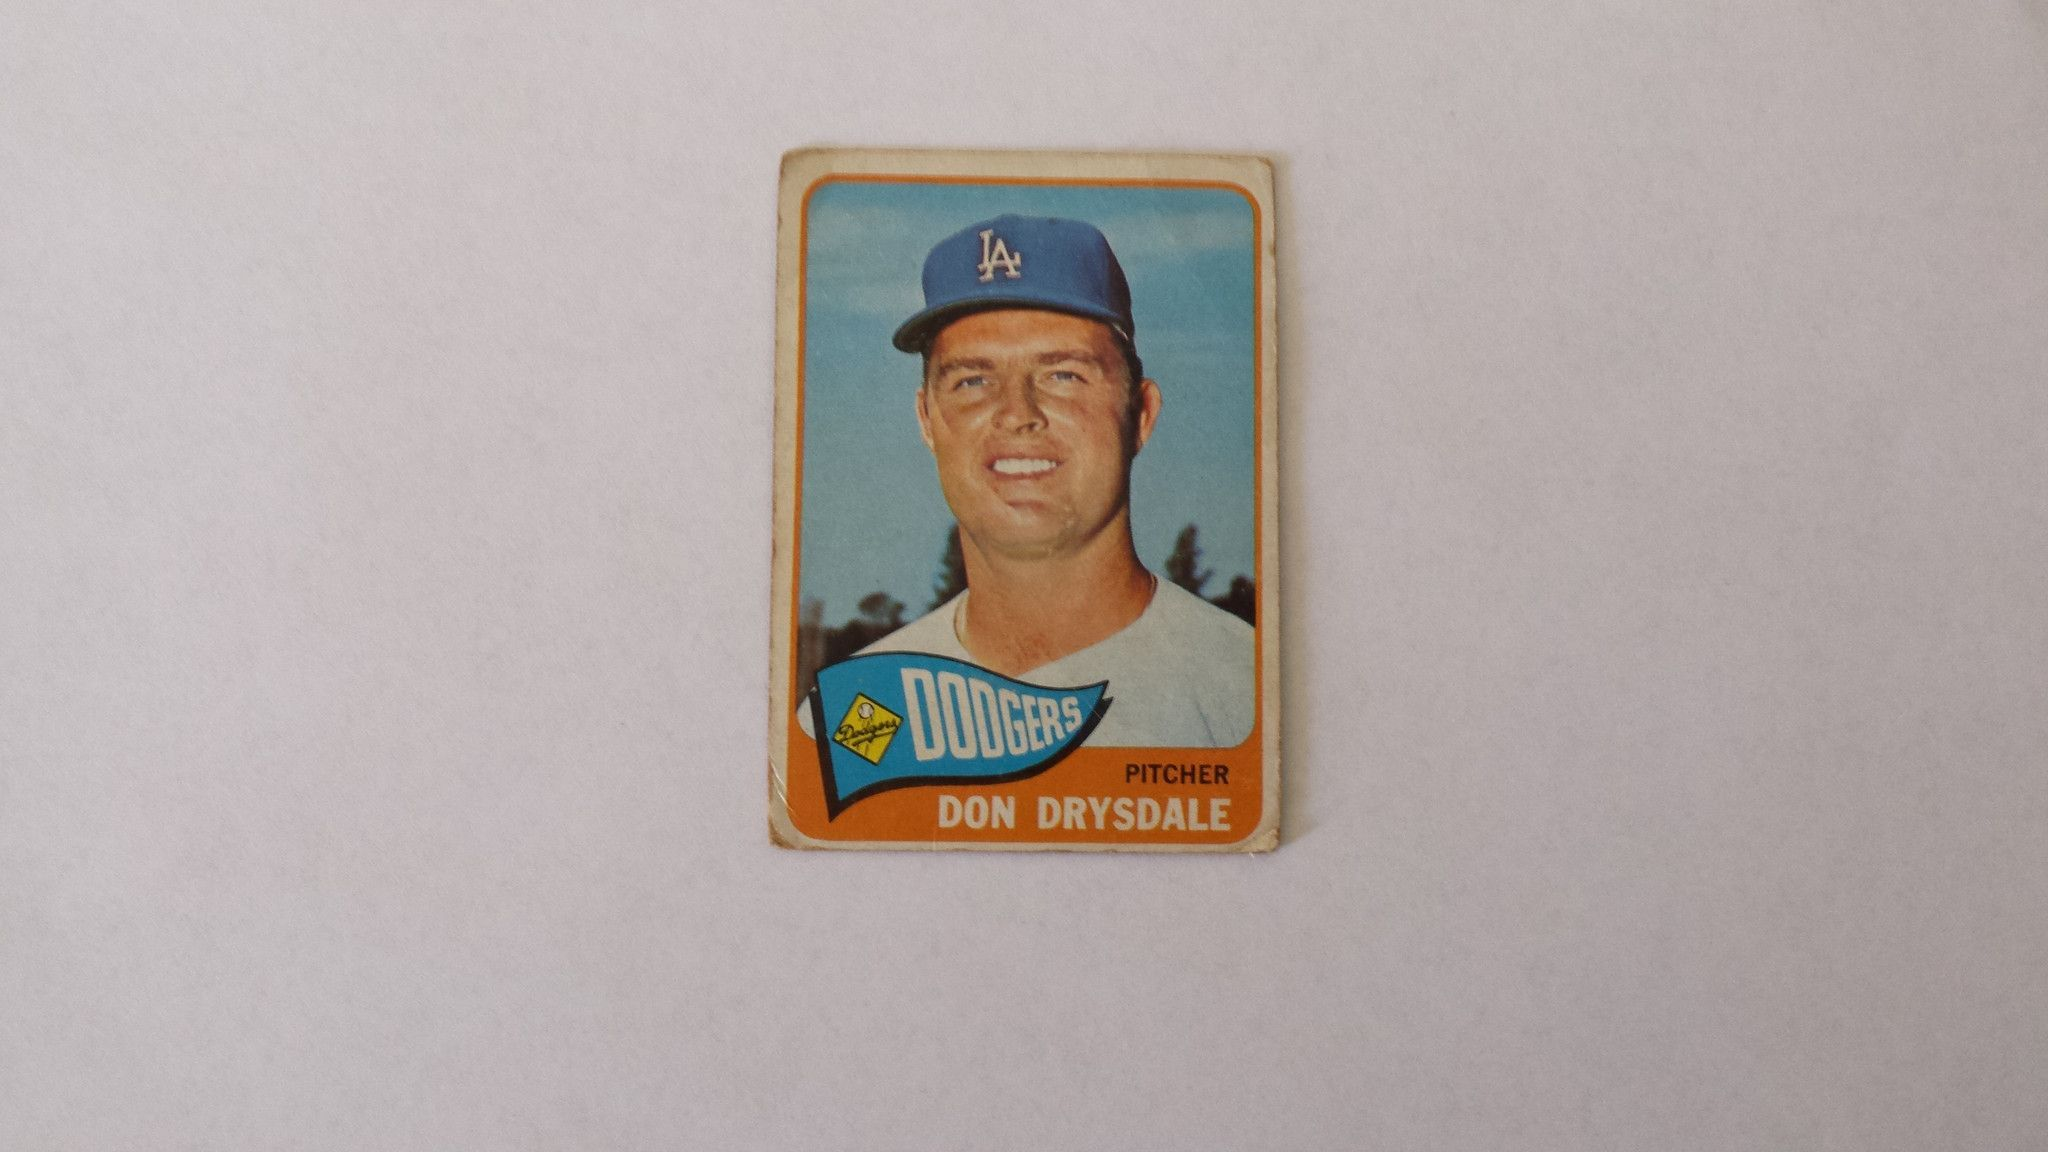 1965 Topps Los Angeles Dodgers Don Drysdale single baseball card